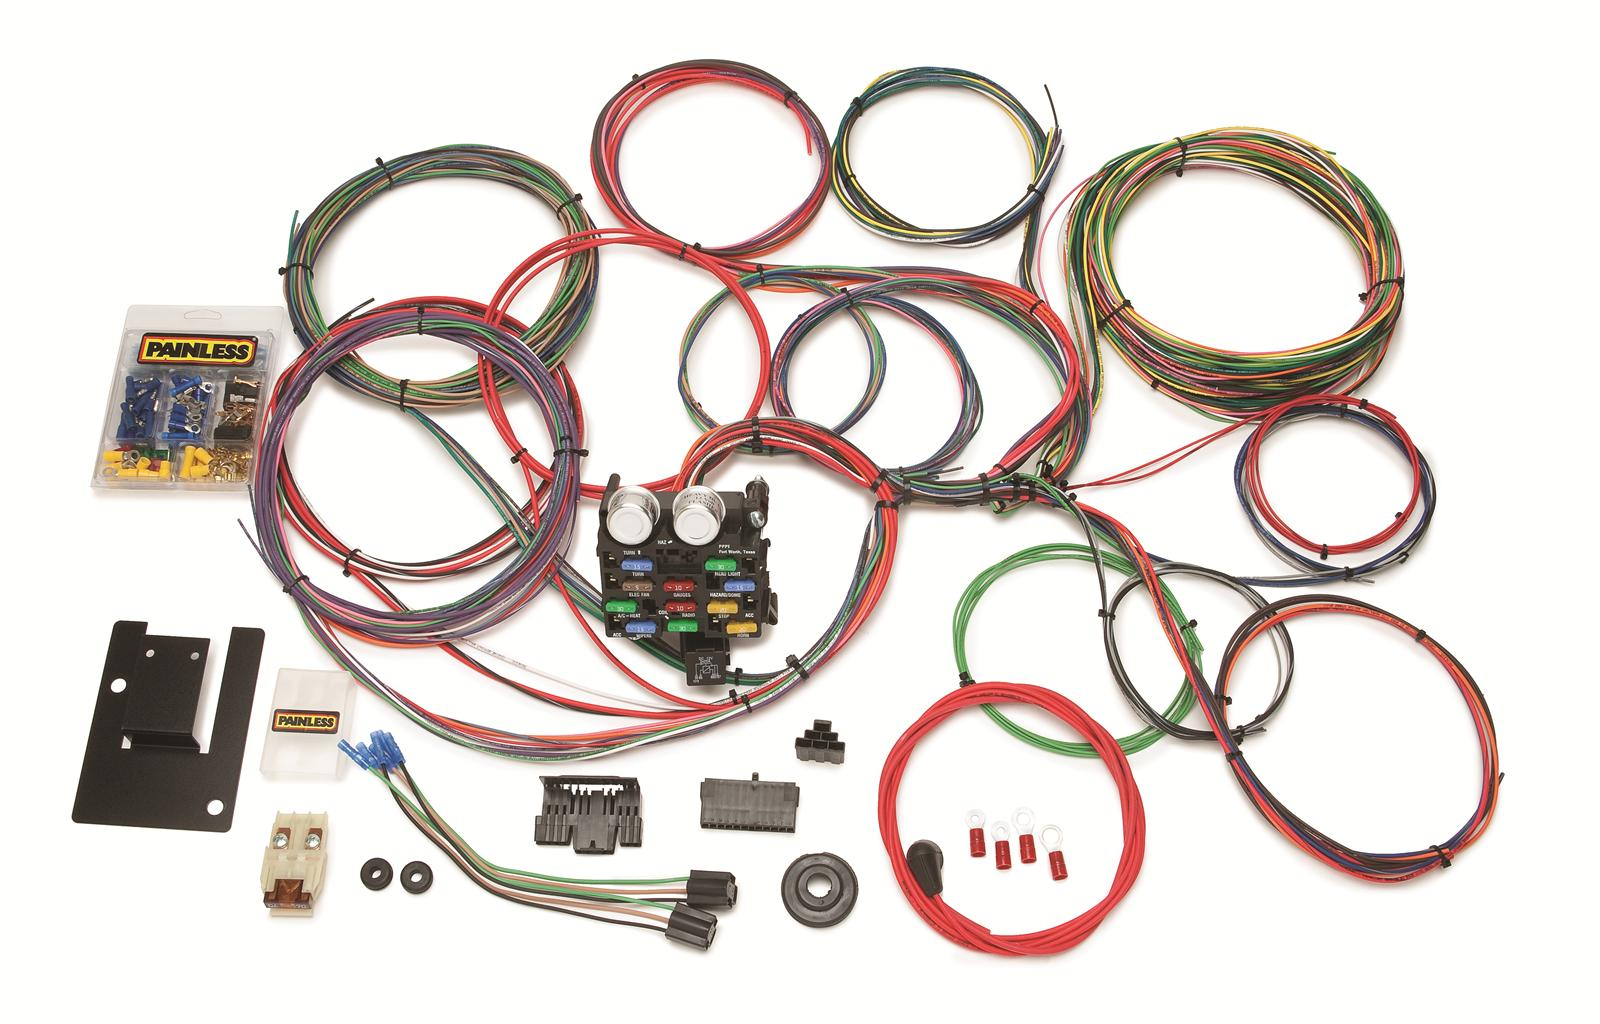 hight resolution of painless performance 21 circuit 1955 57 tri five chevy harnesses 20107 free shipping on orders over 99 at summit racing